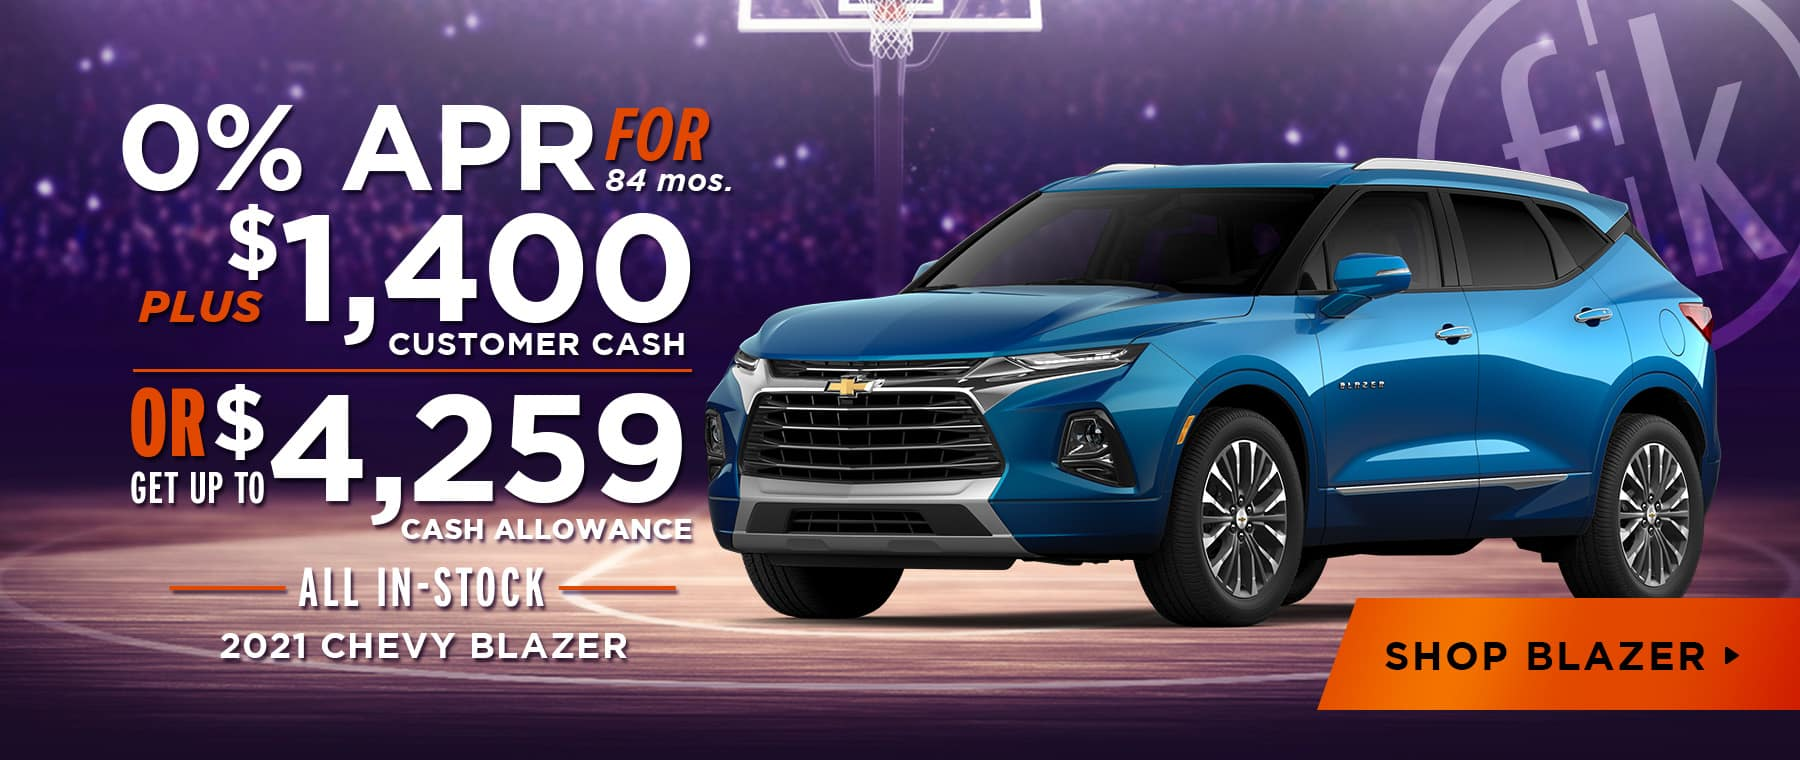 2021 Blazer 0% for 72 mos + $1,400 Customer Cash OR Up To $4,259 Cash Allowance